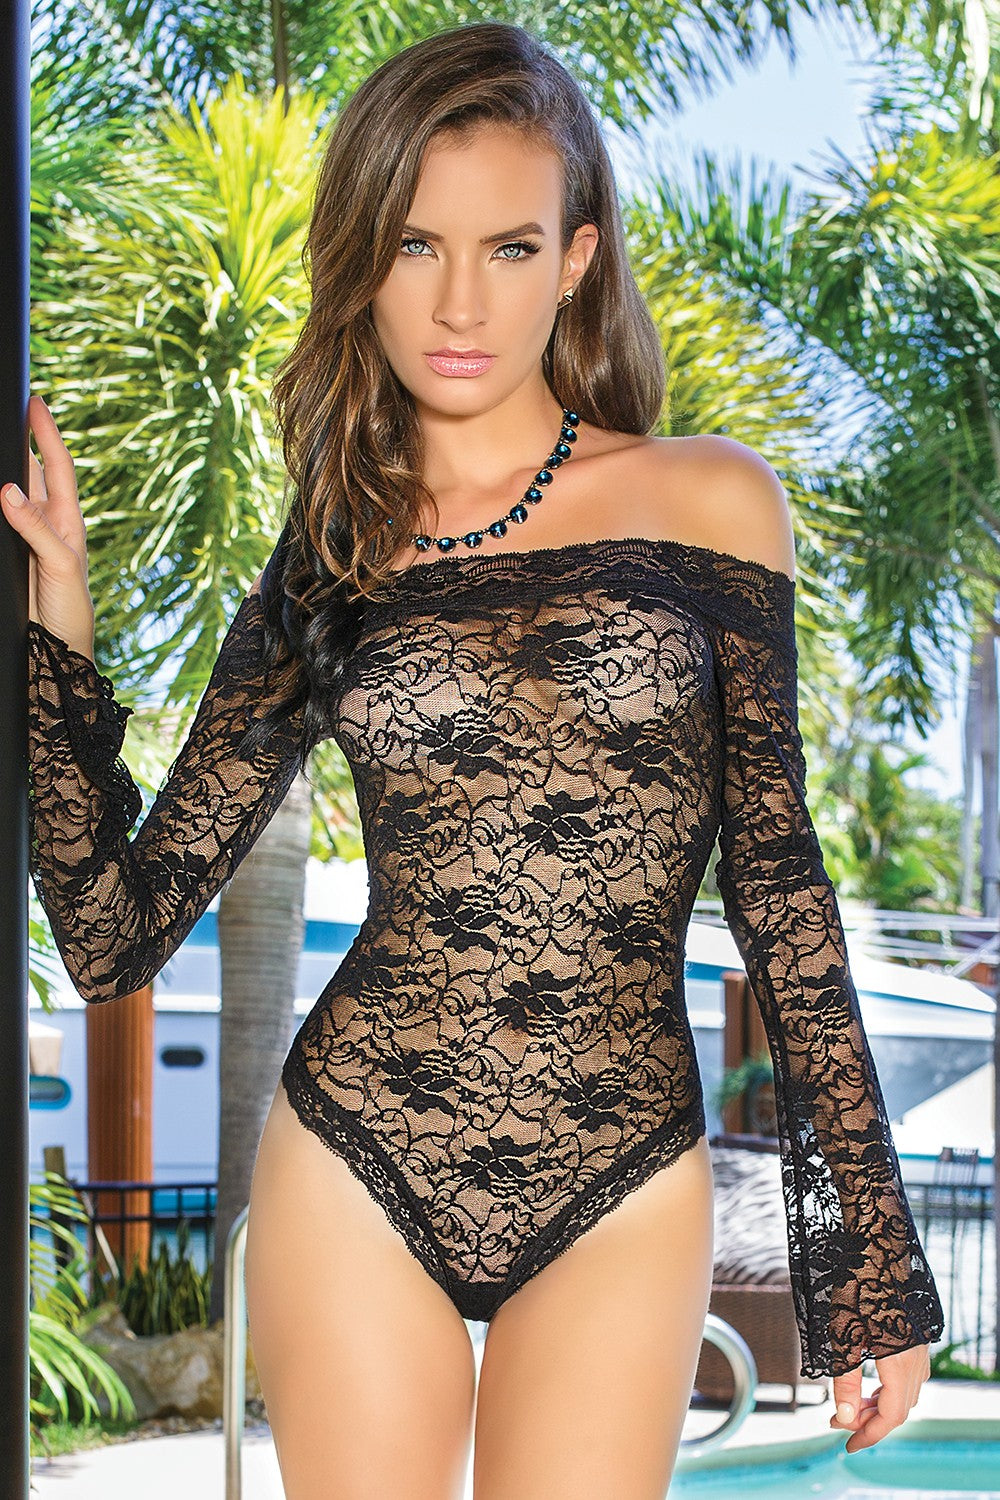 Off-Shoulder Lace Teddy (7069)